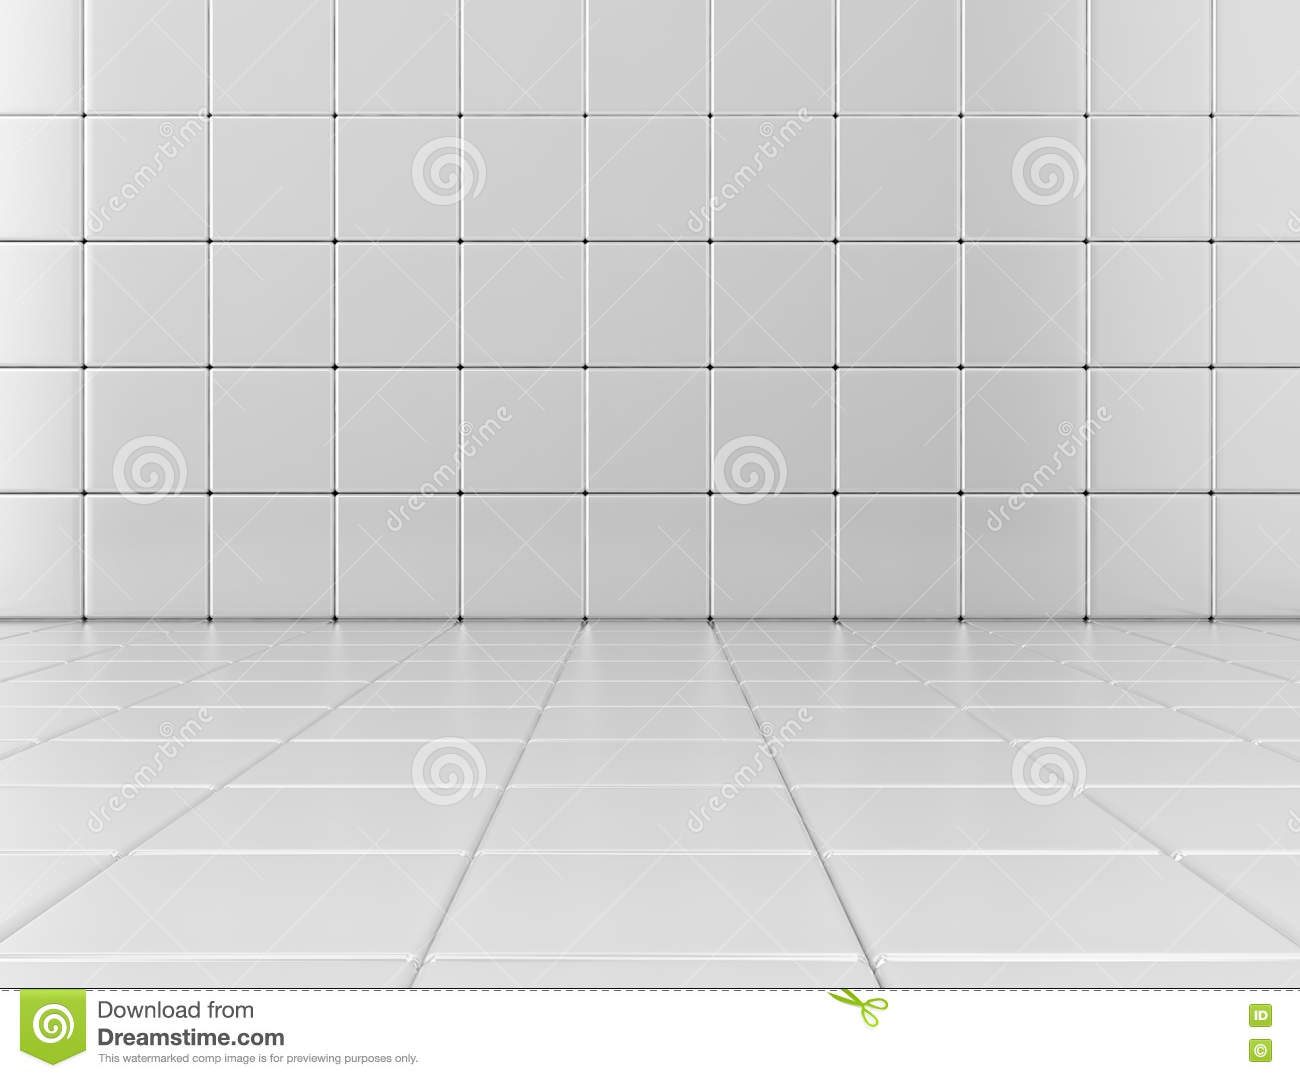 Bathroom Tiles Background white glossy bathroom tile background stock illustration - image